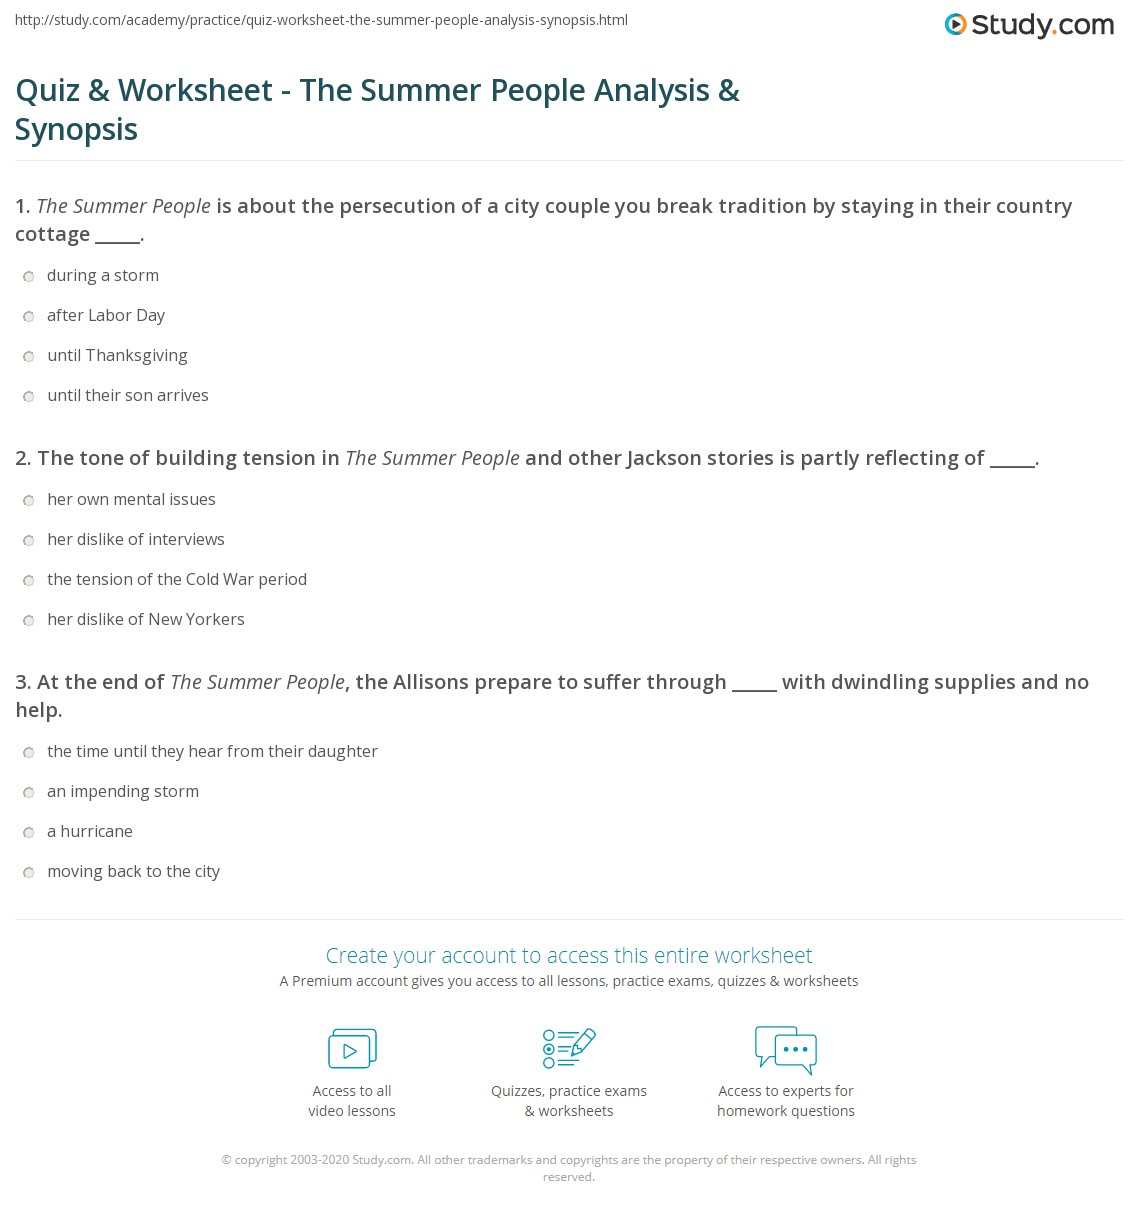 Quiz Worksheet The Summer People Analysis Synopsis Study